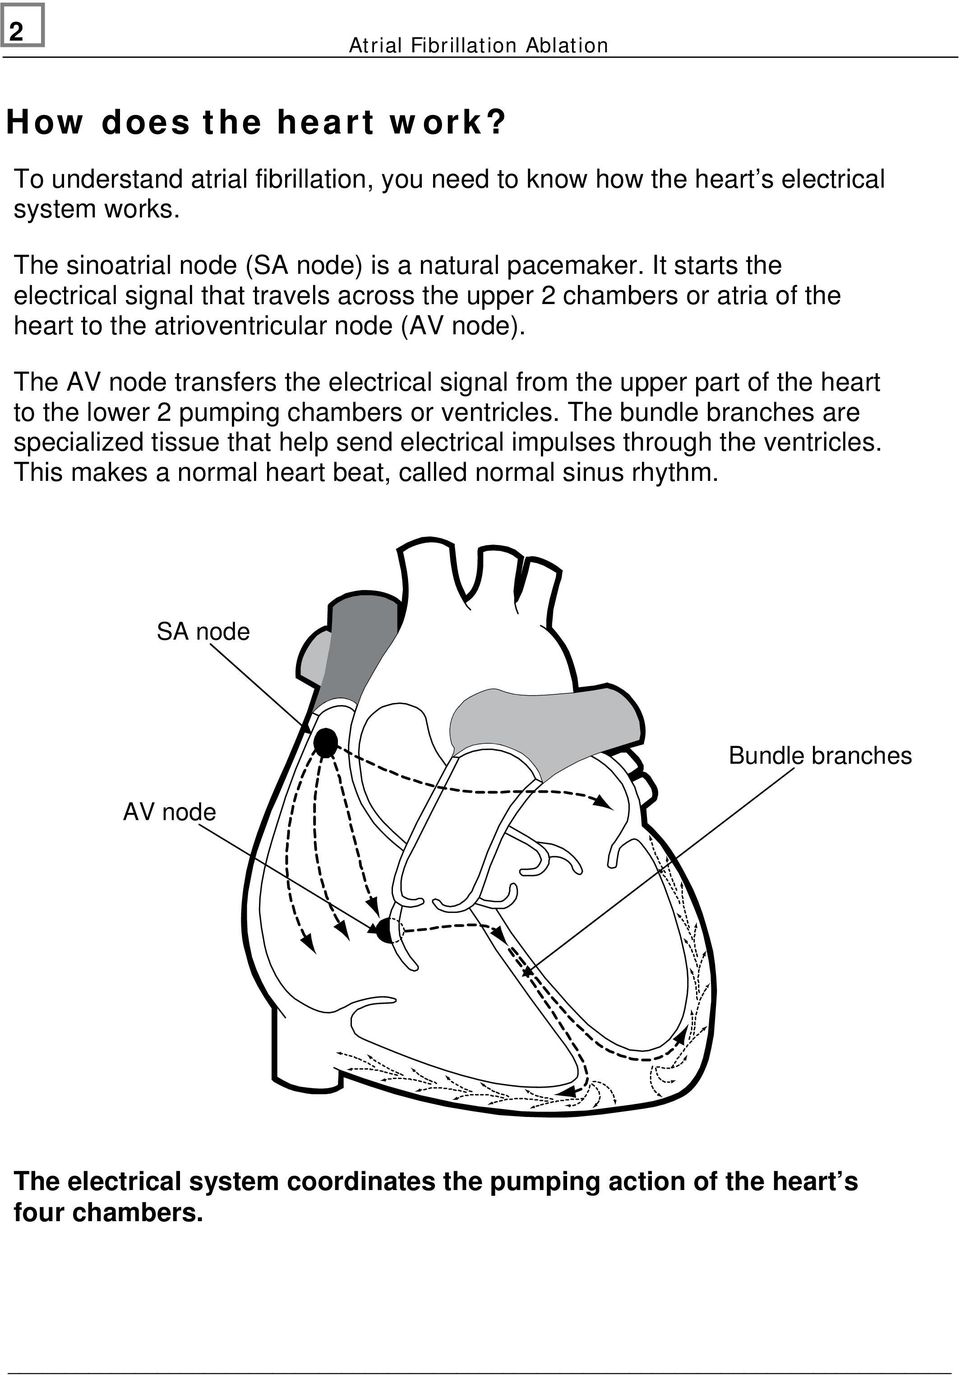 It starts the electrical signal that travels across the upper 2 chambers or atria of the heart to the atrioventricular node (AV node).